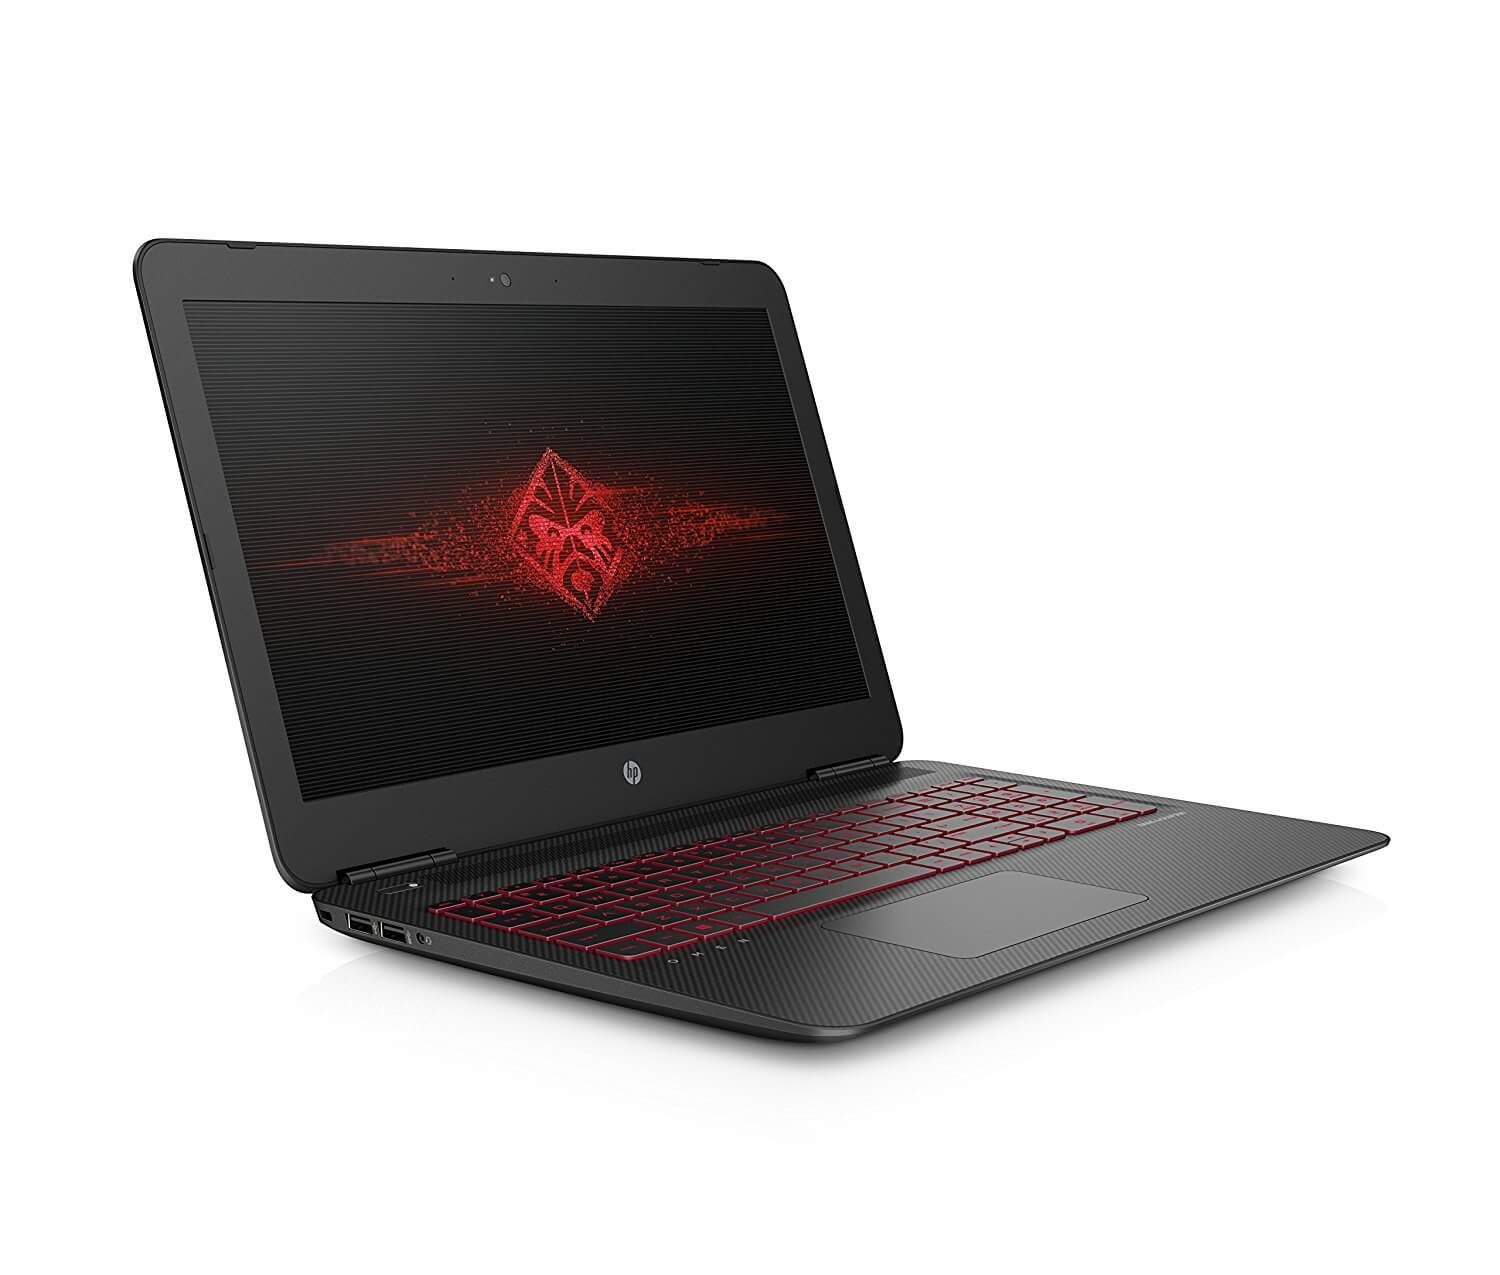 (799) HP OMEN 15-AX007NS  i5 Cheap budget gaming laptop under 800